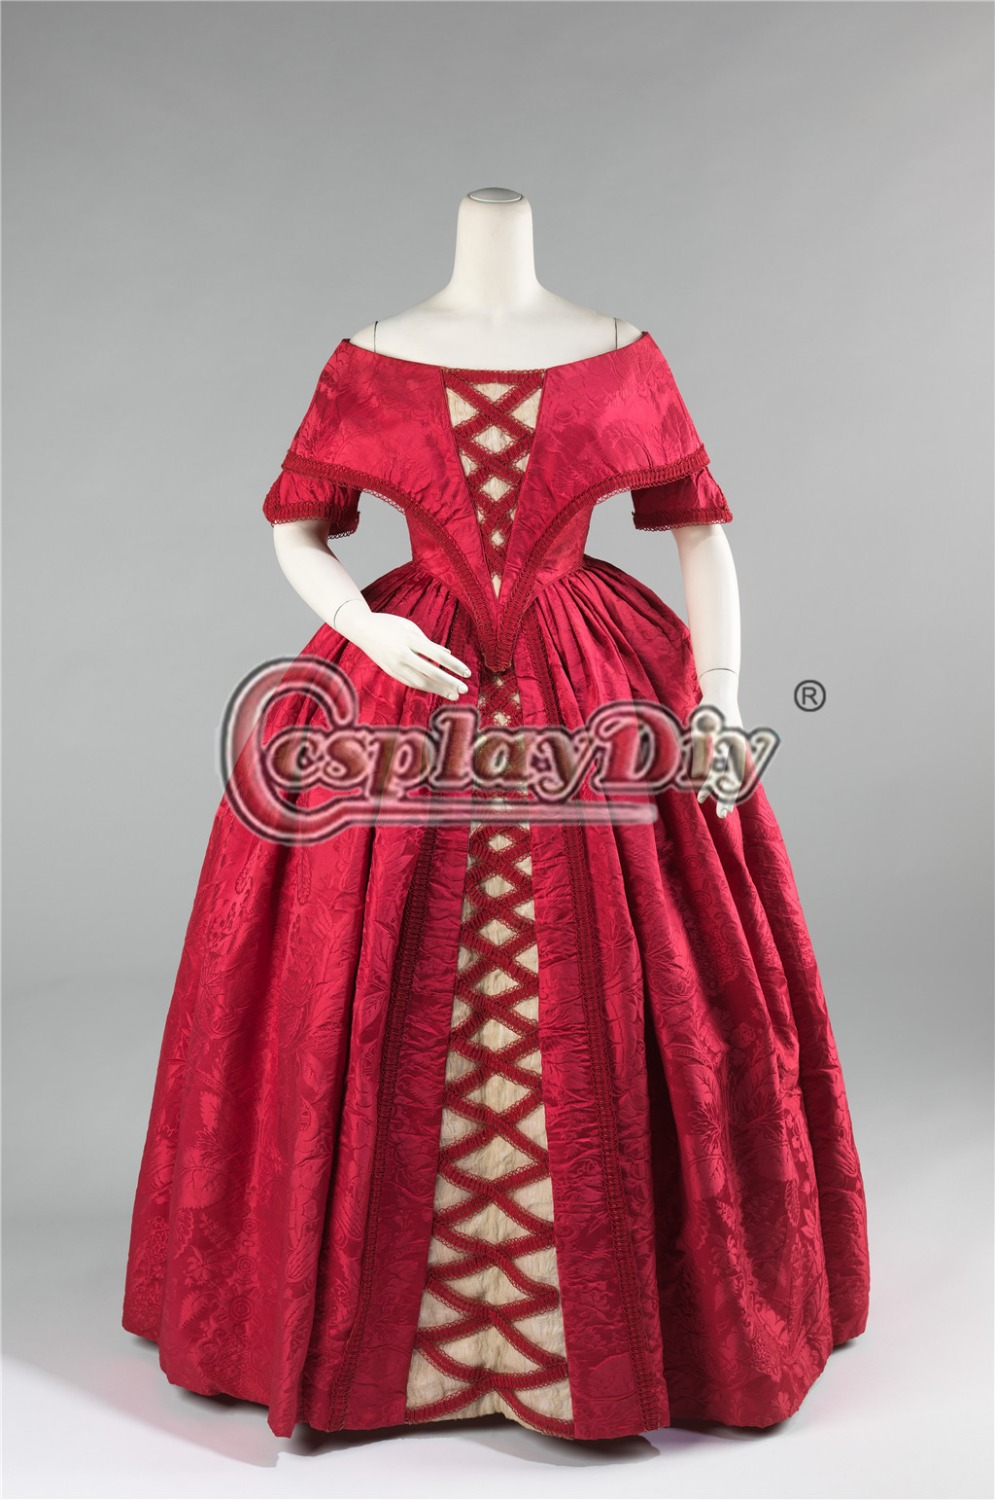 Cosplaydiy Custom Made 19th Century British Cosplay Ball Gown Dress Adult Antoinette Baroque Ball Gown Dress L320